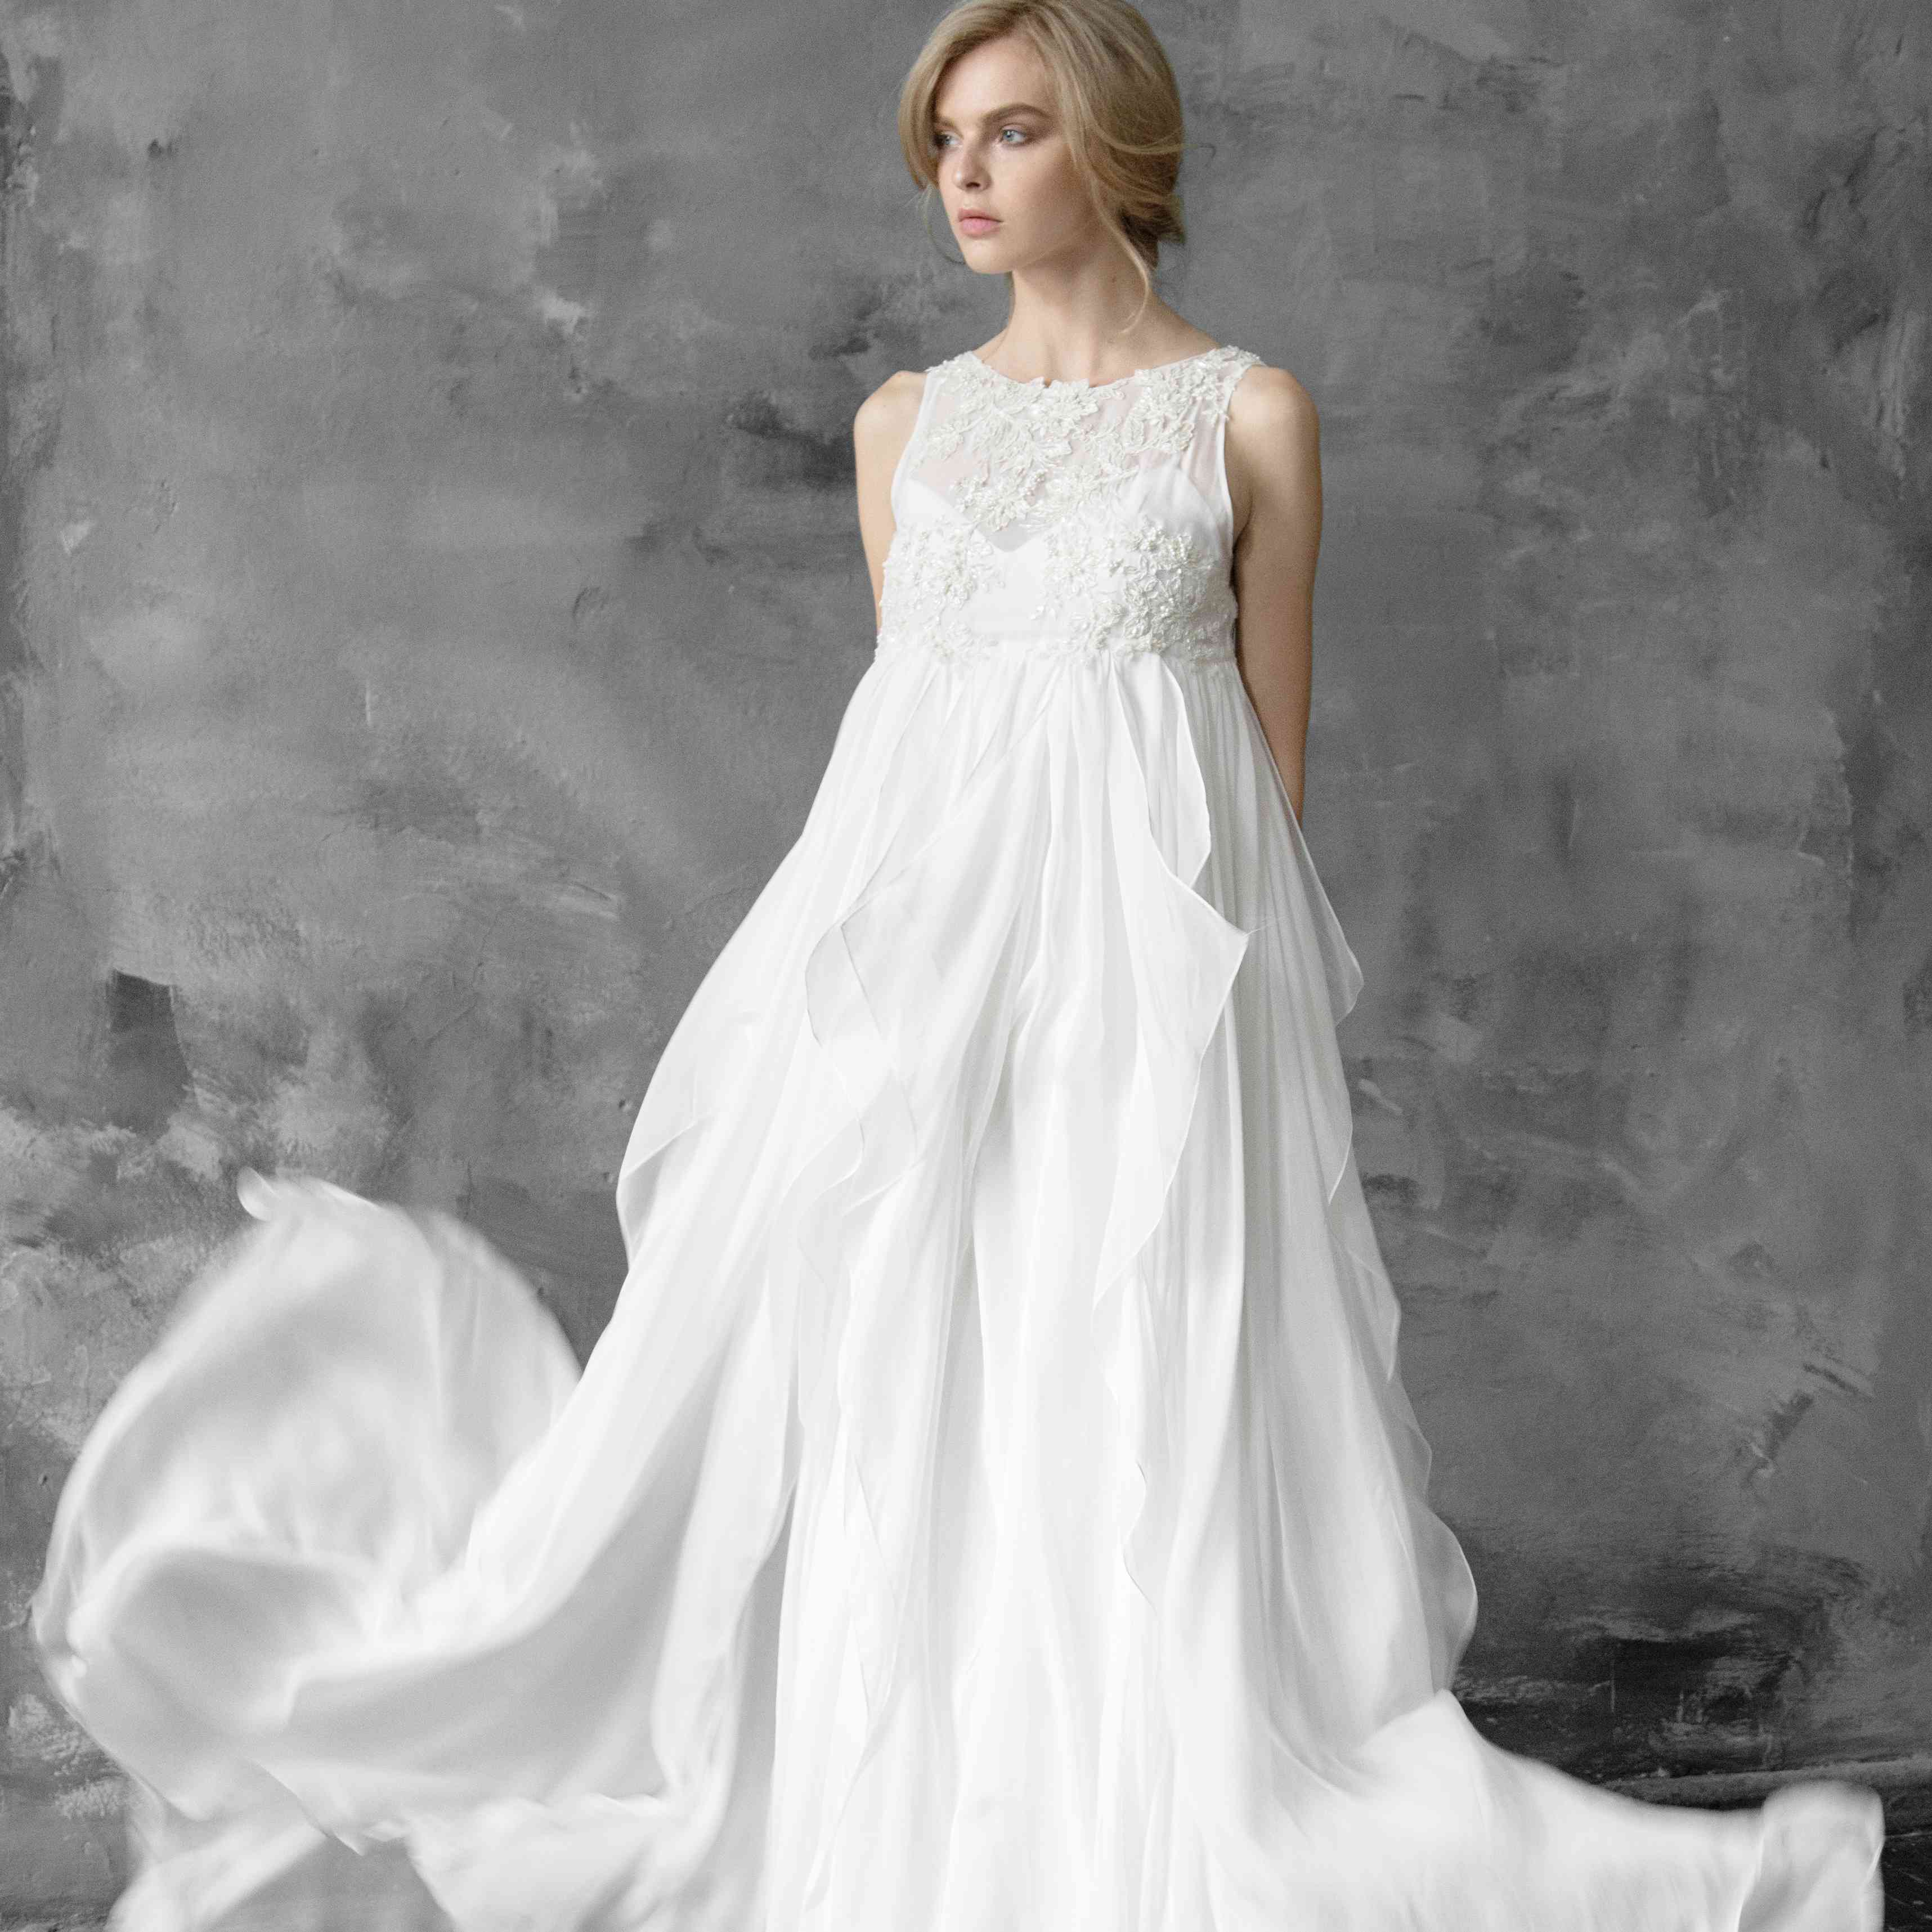 Wedding Gowns For Pregnant Brides Pictures: How To Find The Perfect Maternity Wedding Dress: 10 Tips